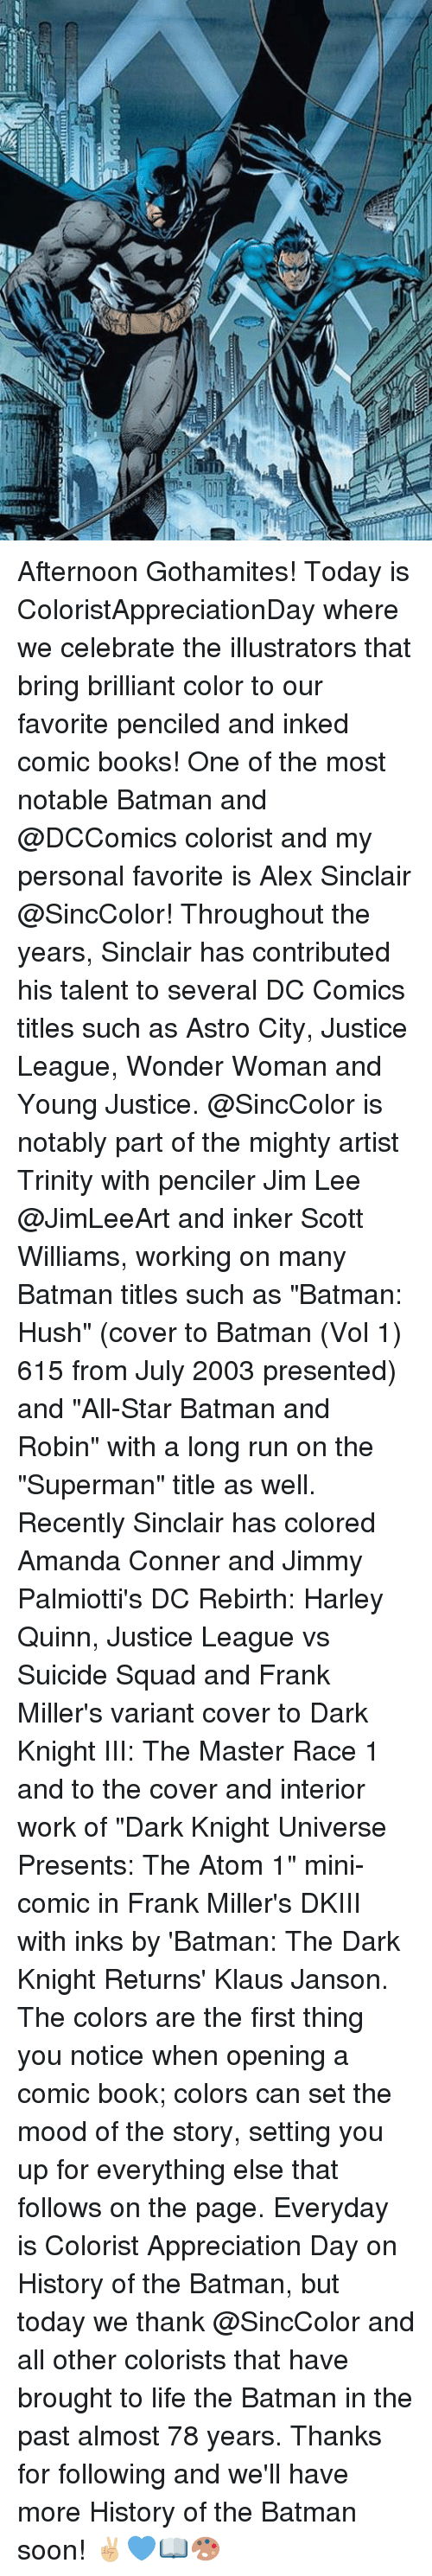 """dark knight returns: Afternoon Gothamites! Today is ColoristAppreciationDay where we celebrate the illustrators that bring brilliant color to our favorite penciled and inked comic books! One of the most notable Batman and @DCComics colorist and my personal favorite is Alex Sinclair @SincColor! Throughout the years, Sinclair has contributed his talent to several DC Comics titles such as Astro City, Justice League, Wonder Woman and Young Justice. @SincColor is notably part of the mighty artist Trinity with penciler Jim Lee @JimLeeArt and inker Scott Williams, working on many Batman titles such as """"Batman: Hush"""" (cover to Batman (Vol 1) 615 from July 2003 presented) and """"All-Star Batman and Robin"""" with a long run on the """"Superman"""" title as well. Recently Sinclair has colored Amanda Conner and Jimmy Palmiotti's DC Rebirth: Harley Quinn, Justice League vs Suicide Squad and Frank Miller's variant cover to Dark Knight III: The Master Race 1 and to the cover and interior work of """"Dark Knight Universe Presents: The Atom 1"""" mini-comic in Frank Miller's DKIII with inks by 'Batman: The Dark Knight Returns' Klaus Janson. The colors are the first thing you notice when opening a comic book; colors can set the mood of the story, setting you up for everything else that follows on the page. Everyday is Colorist Appreciation Day on History of the Batman, but today we thank @SincColor and all other colorists that have brought to life the Batman in the past almost 78 years. Thanks for following and we'll have more History of the Batman soon! ✌🏼️💙📖🎨"""